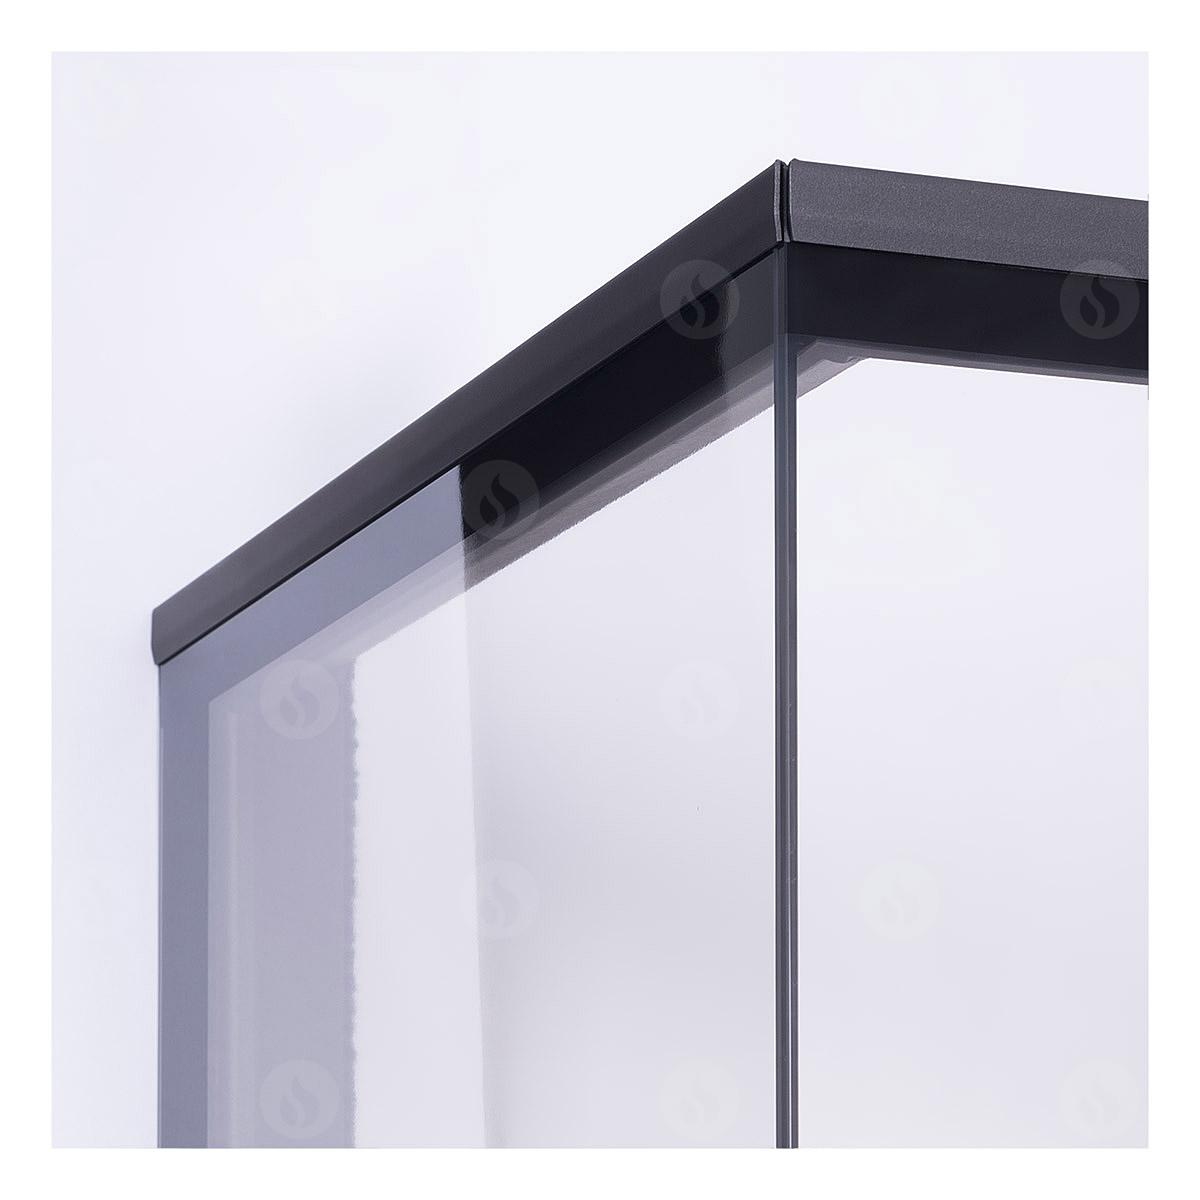 HEAT R/L 3g L 81.51.40.01(21) - hot-air corner fireplace insert with lifting door and bent (split) glazing